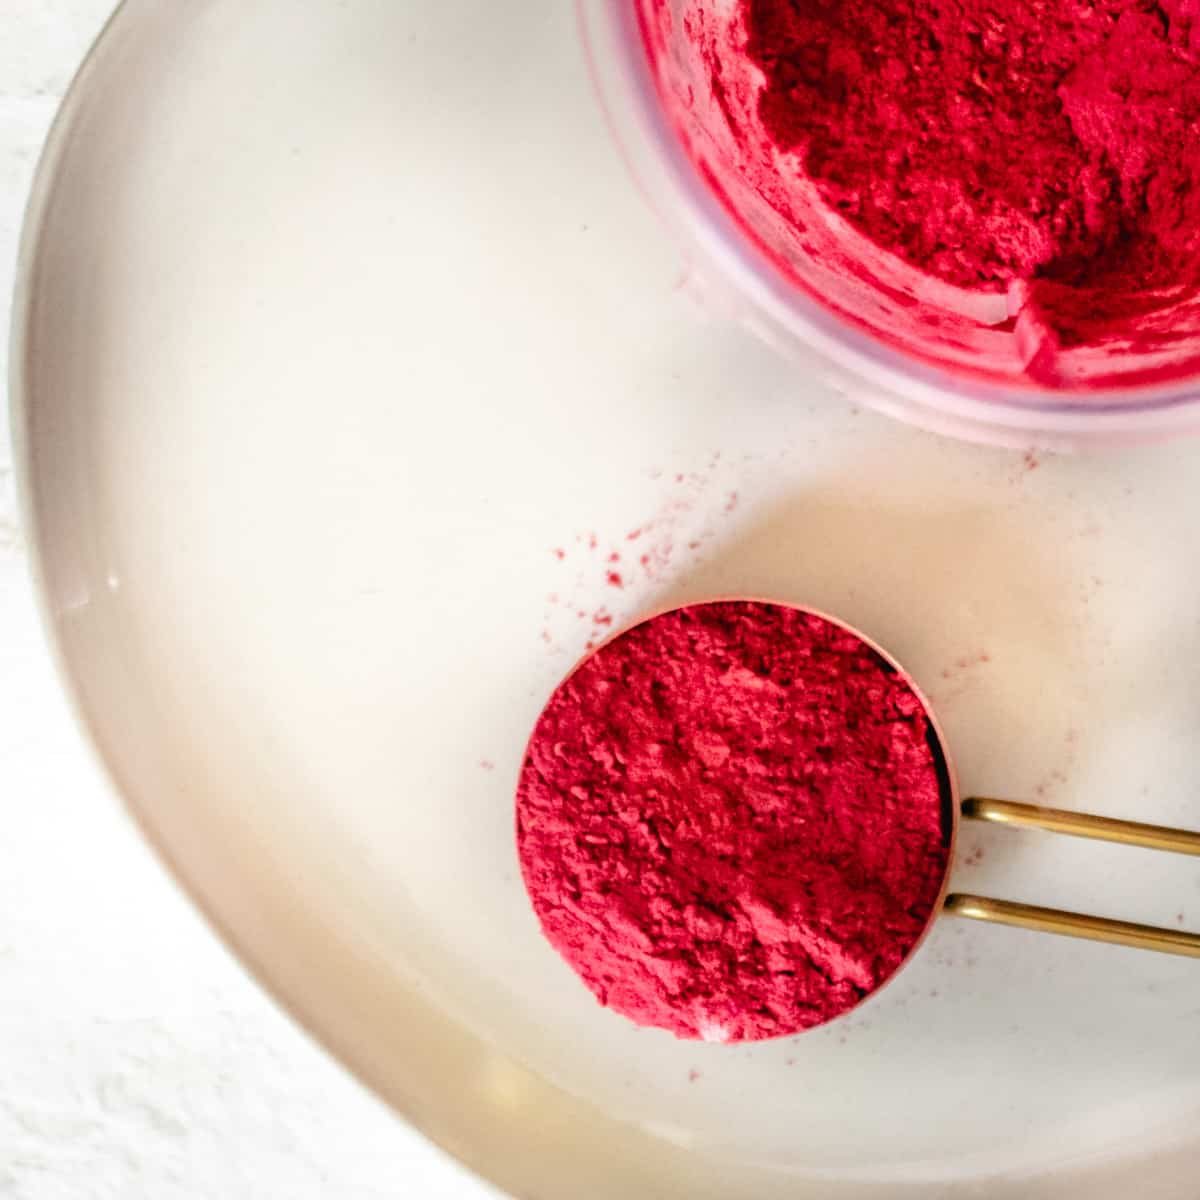 Magenta colored fruit powder in a brass measuring cup.